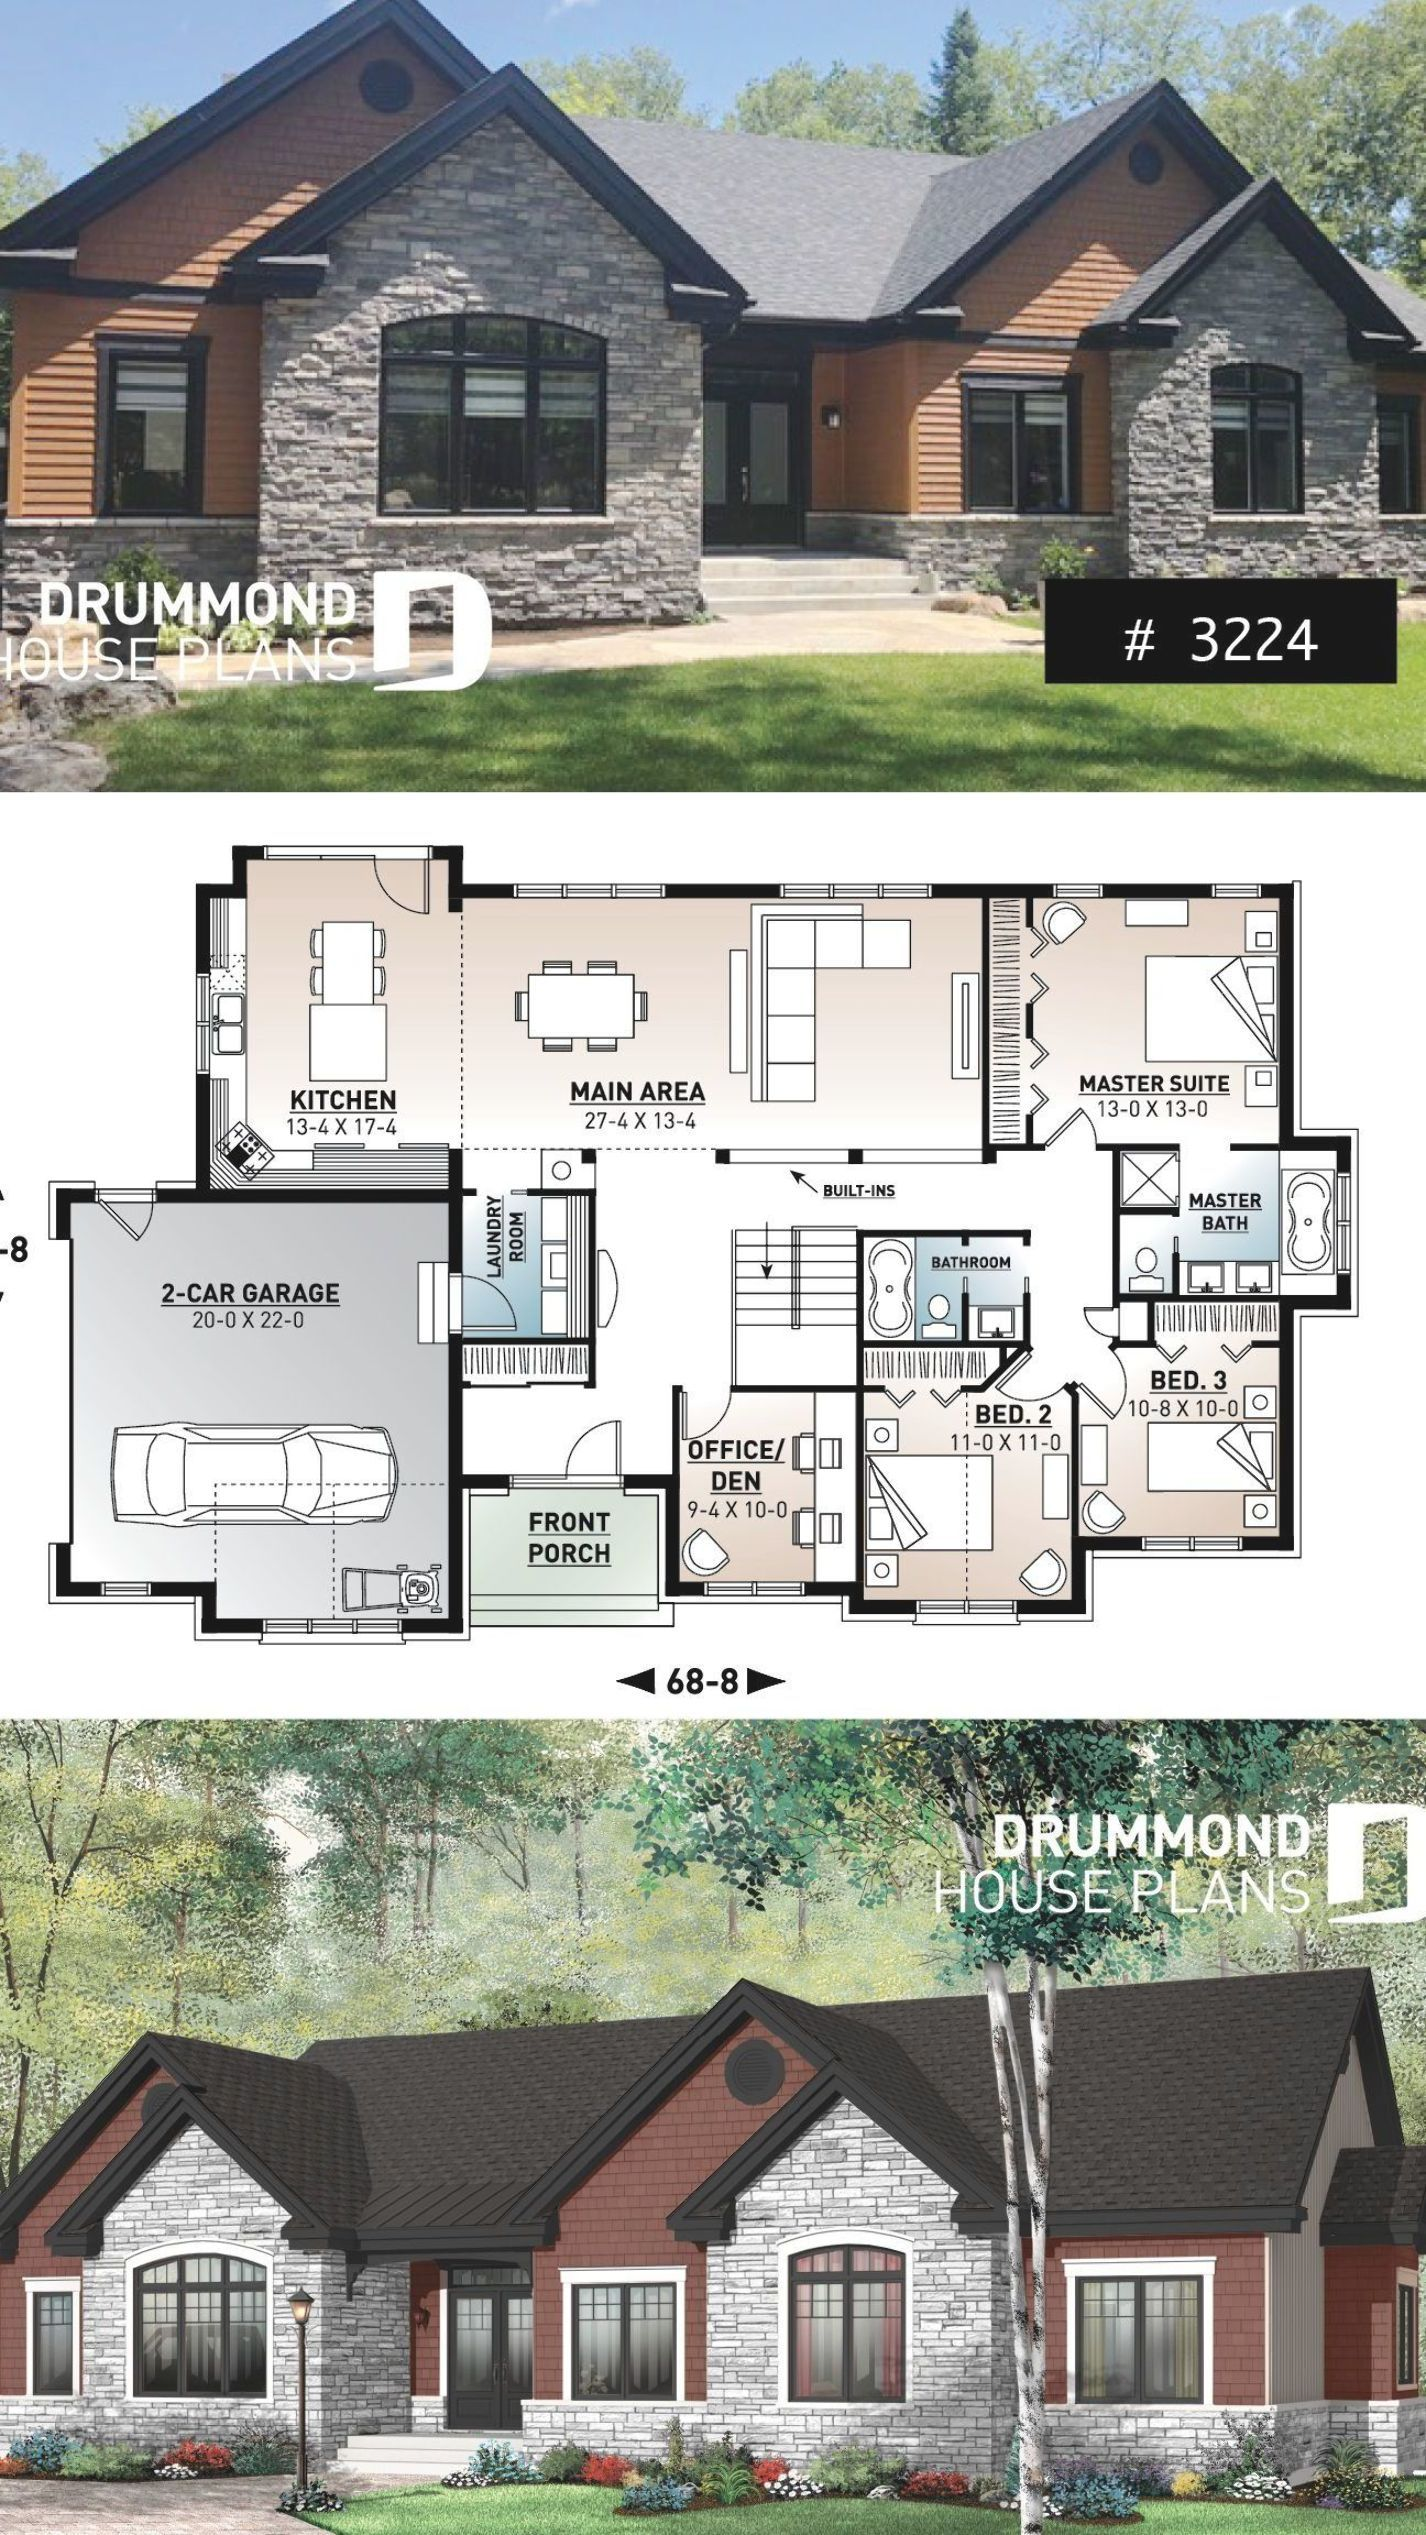 Comfortable 3 To 4 Bedroom Ranch Bungalow House Plan For Corner Lot 9 Ceiling Large Kitchen Isl Ranch House Plans Modern Bungalow Exterior Bungalow Exterior